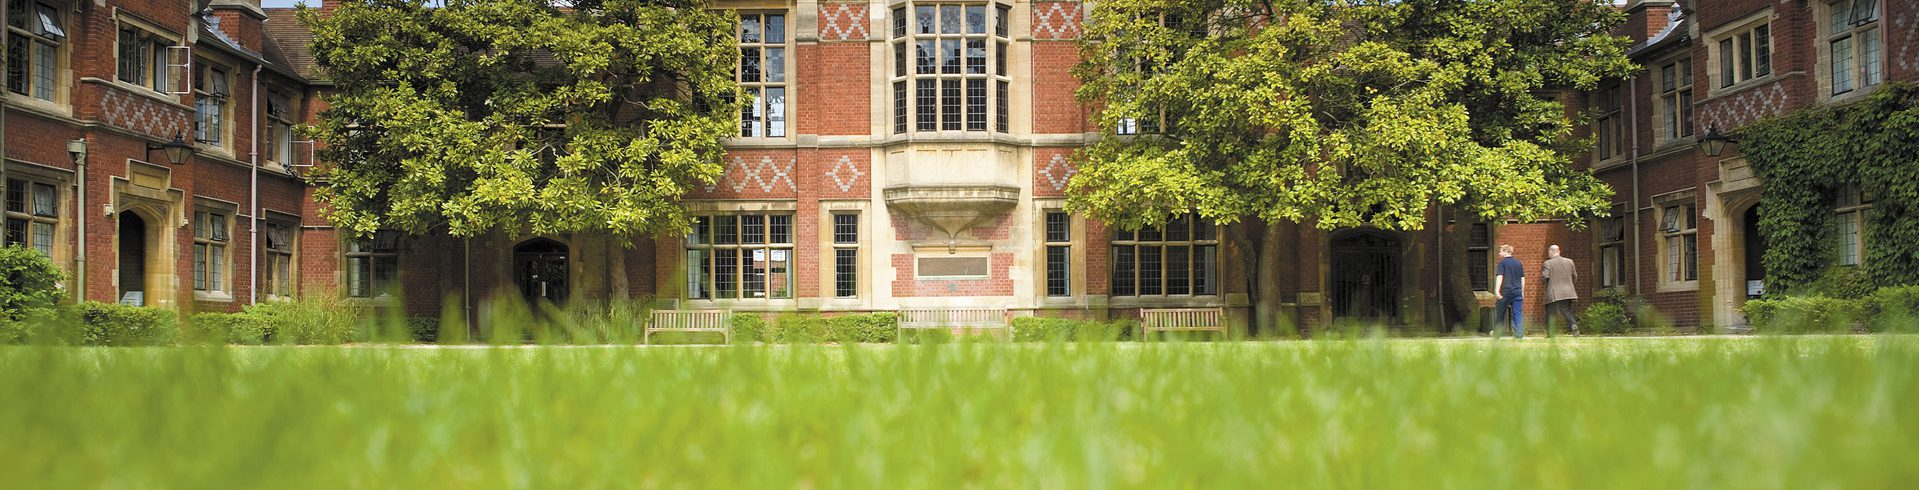 A photo of Wantage Hall at the University of Reading